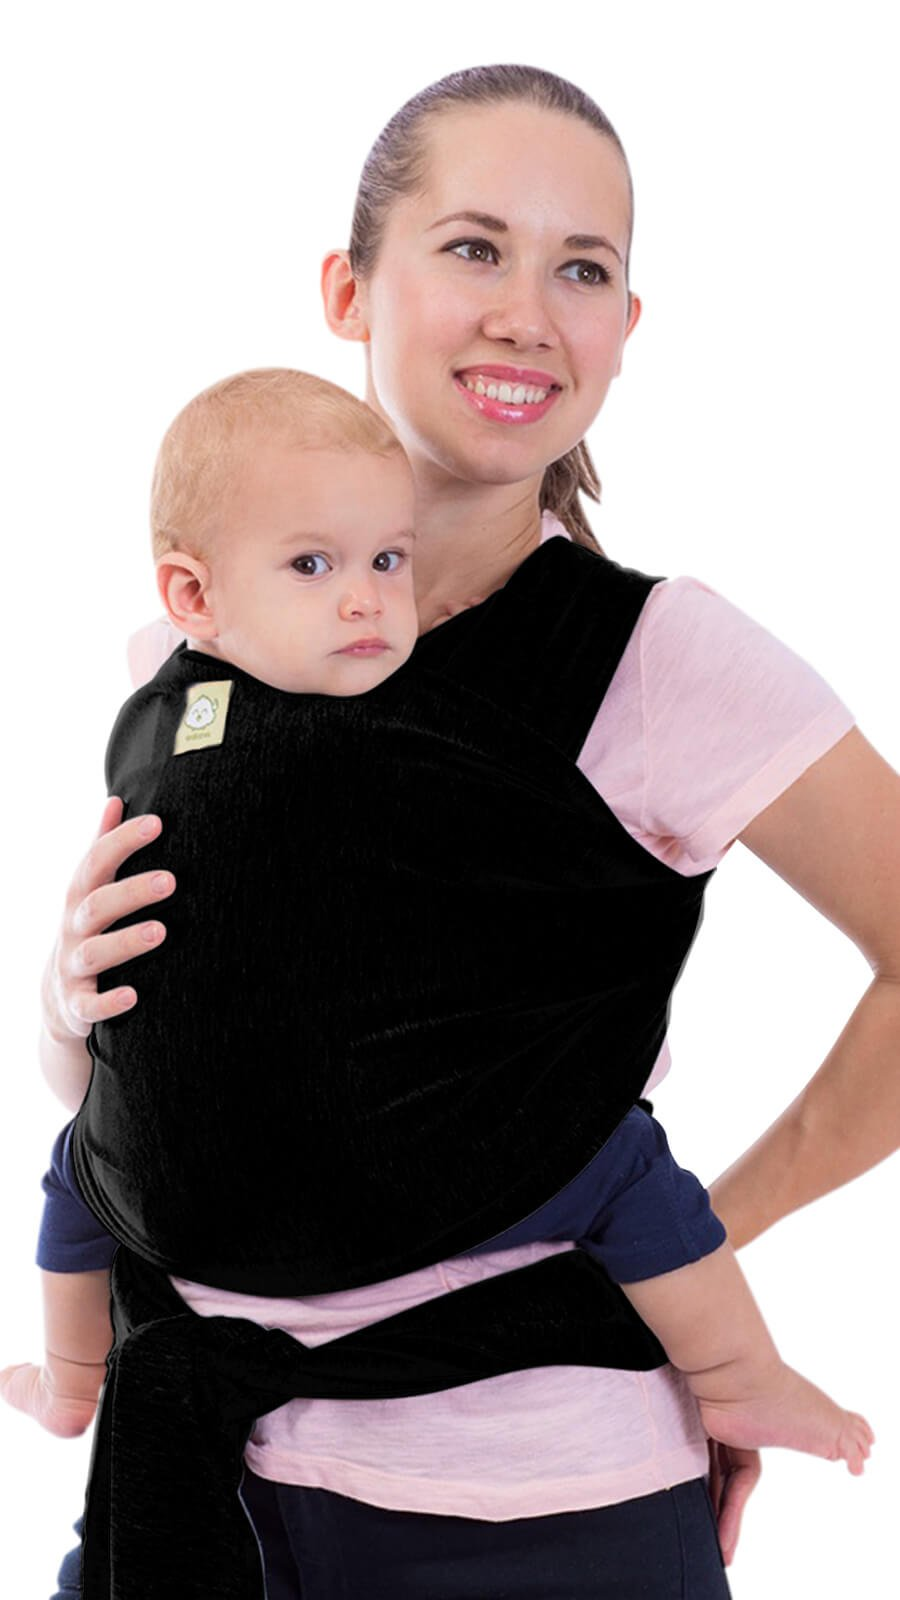 597d21601a7 Get Quotations · Baby Wrap Carrier - Baby Sling by KeaBabies - 2 Colors - Baby  Carrier Wrap -